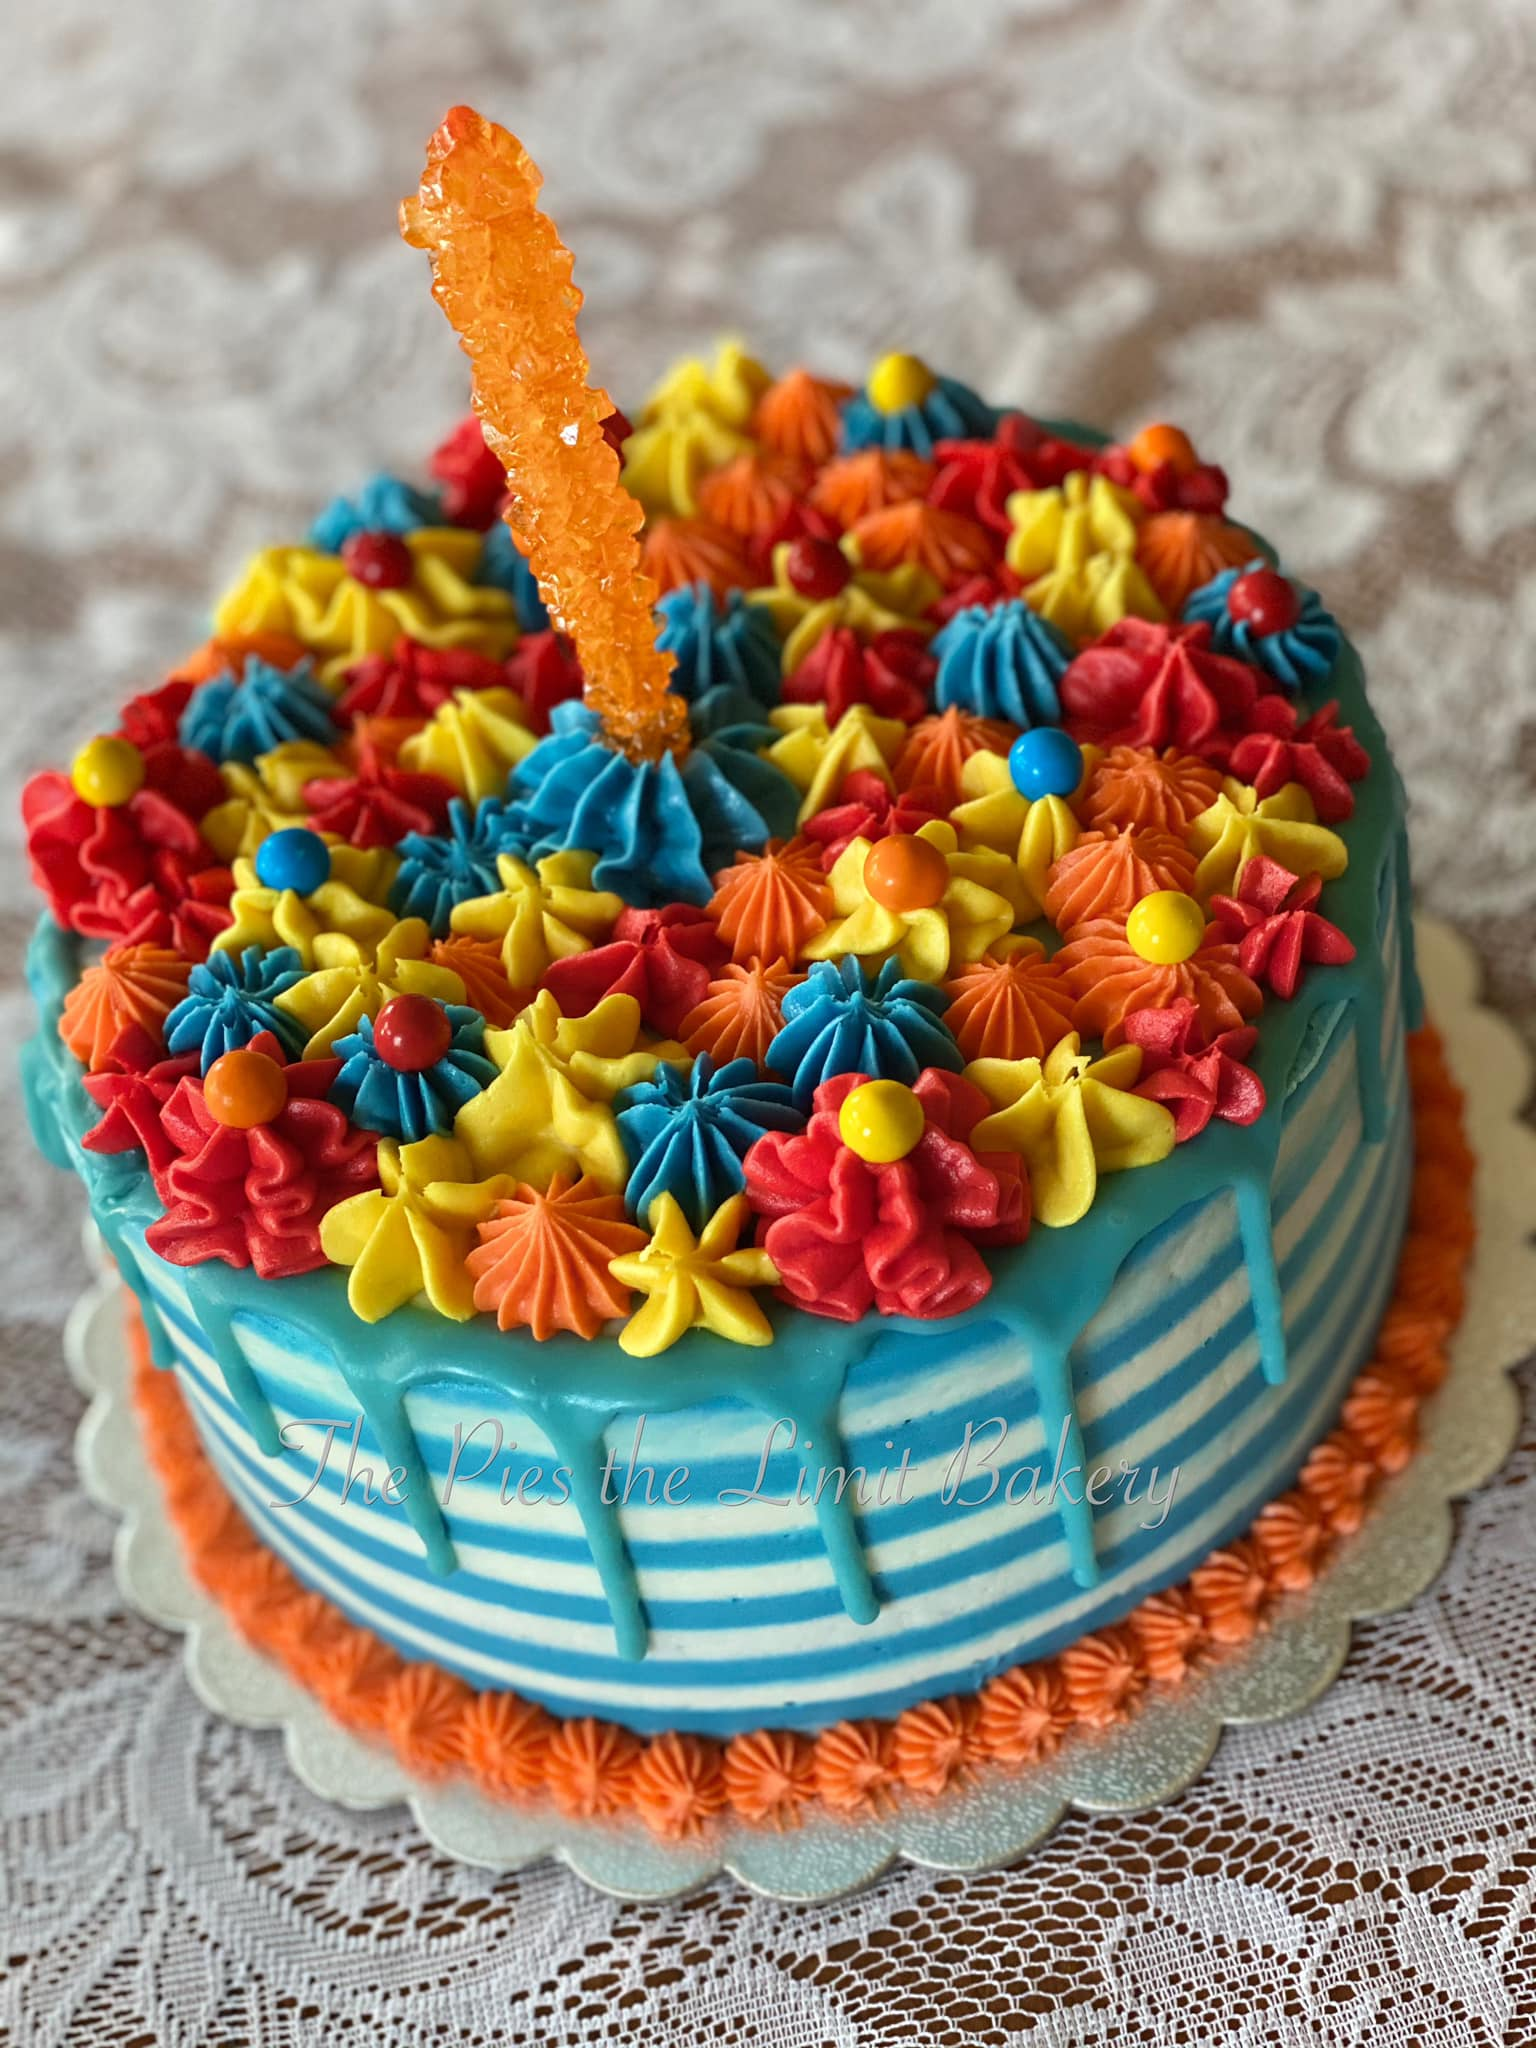 colorful cake 2.jpg